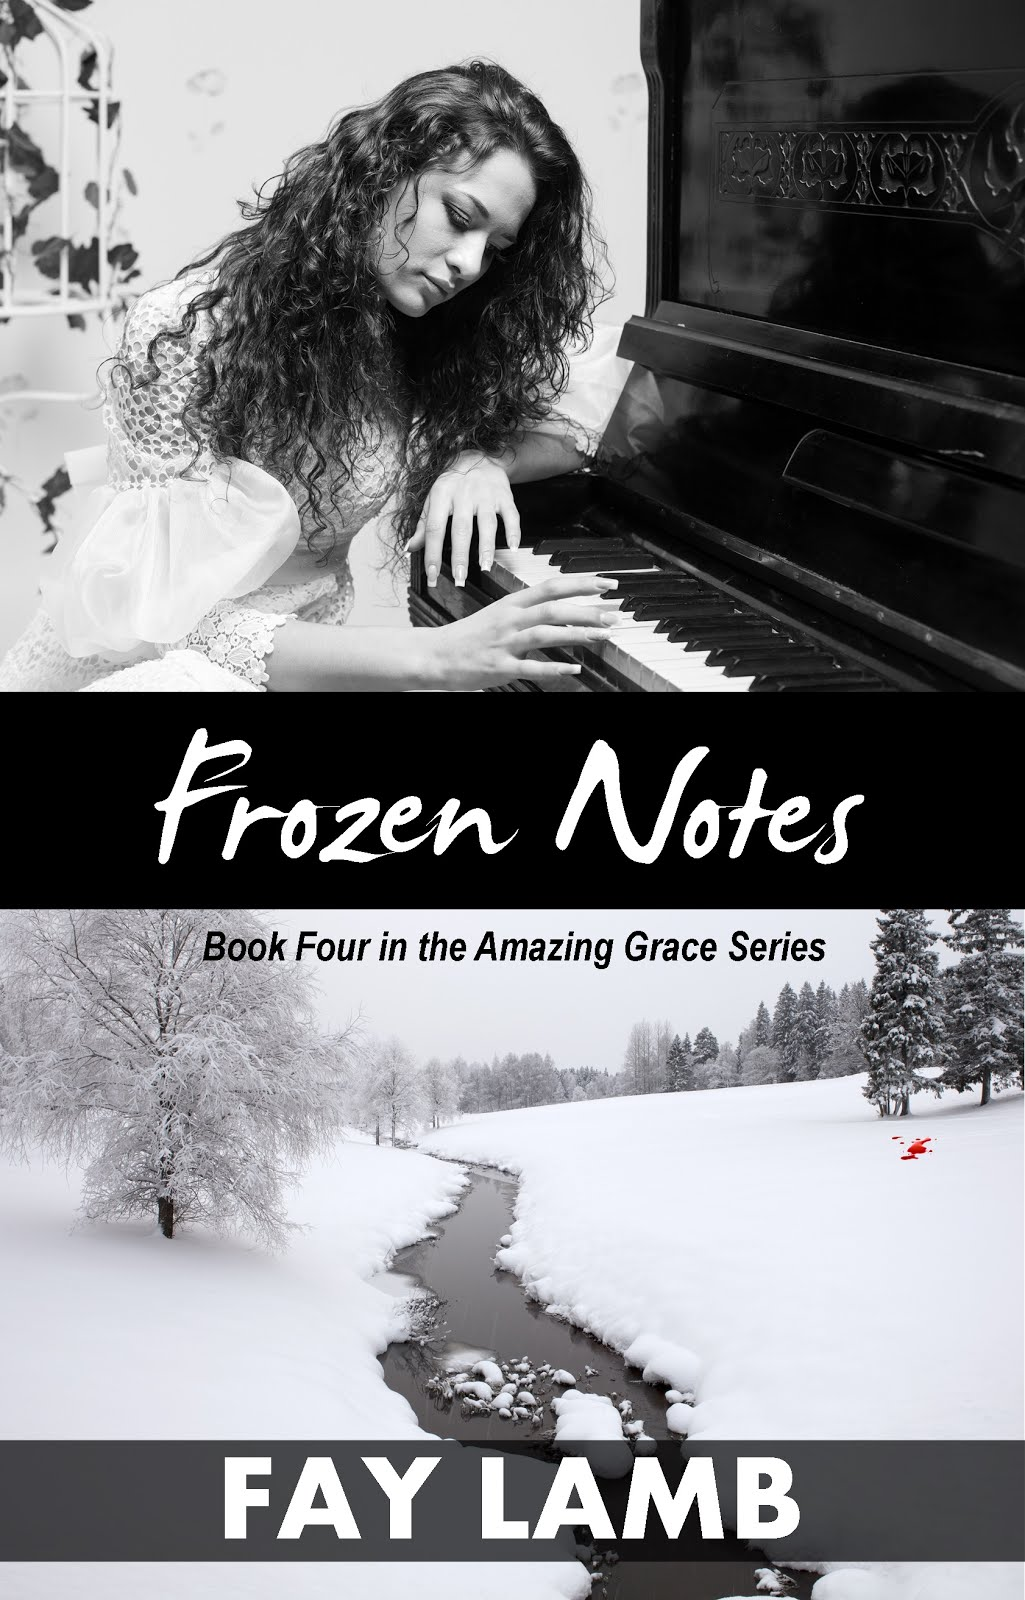 FROZEN NOTES